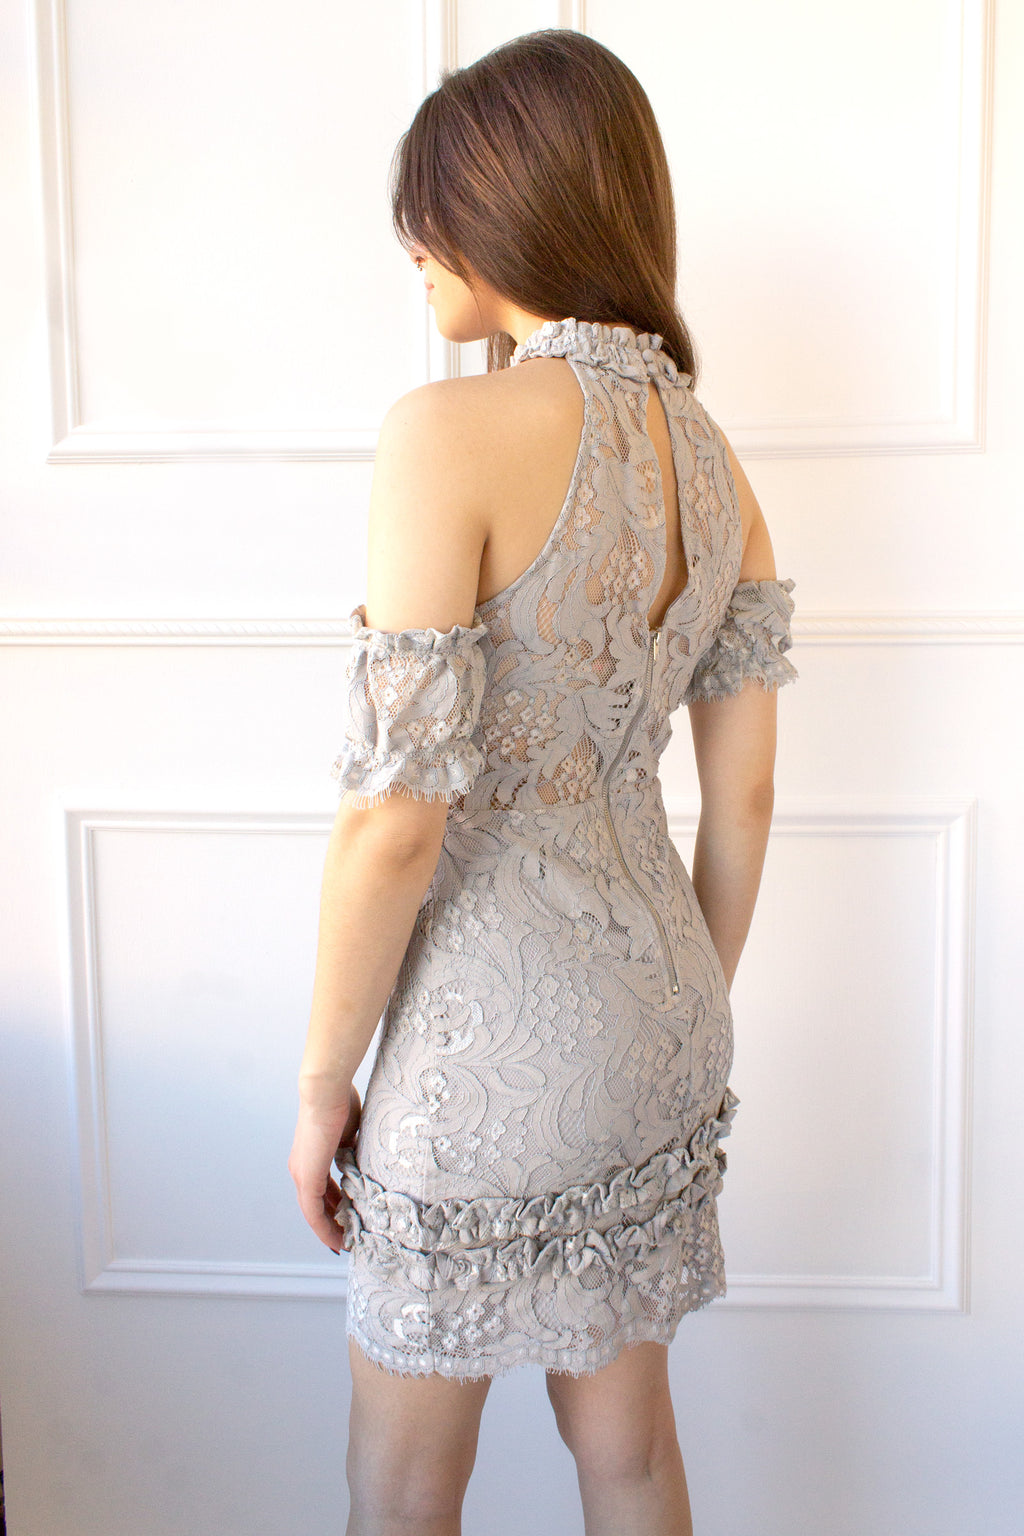 Eloquinn Lace Dress - gray